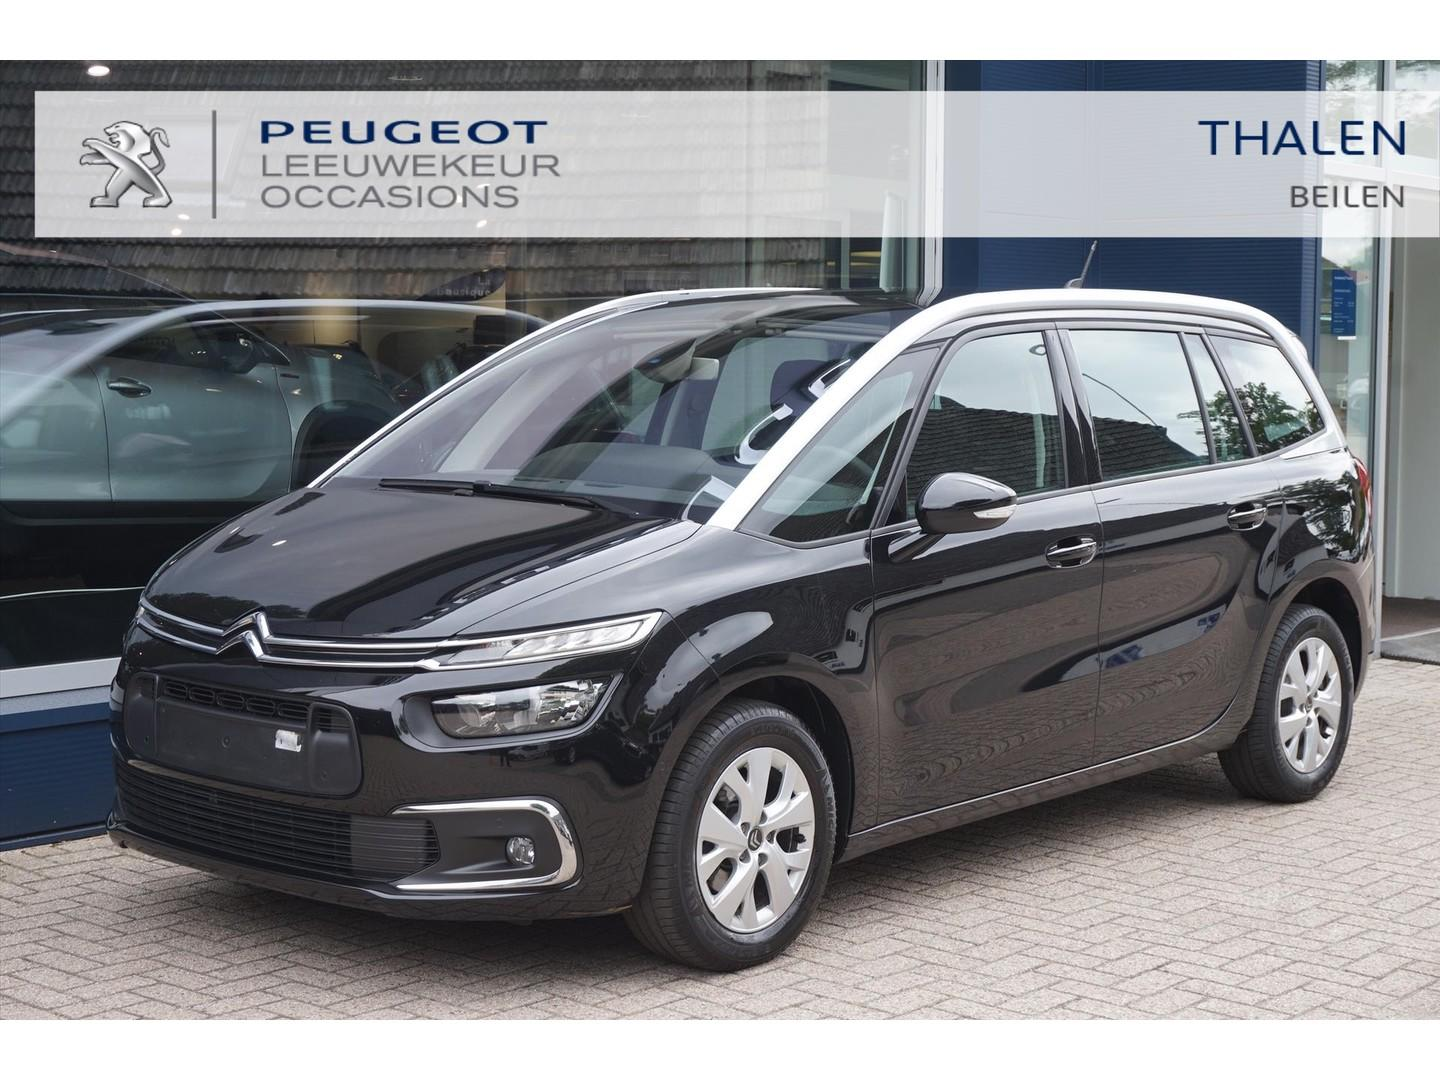 Citroën Grand c4 spacetourer Automaat navi/camera/7 zitplaatsen/keyless